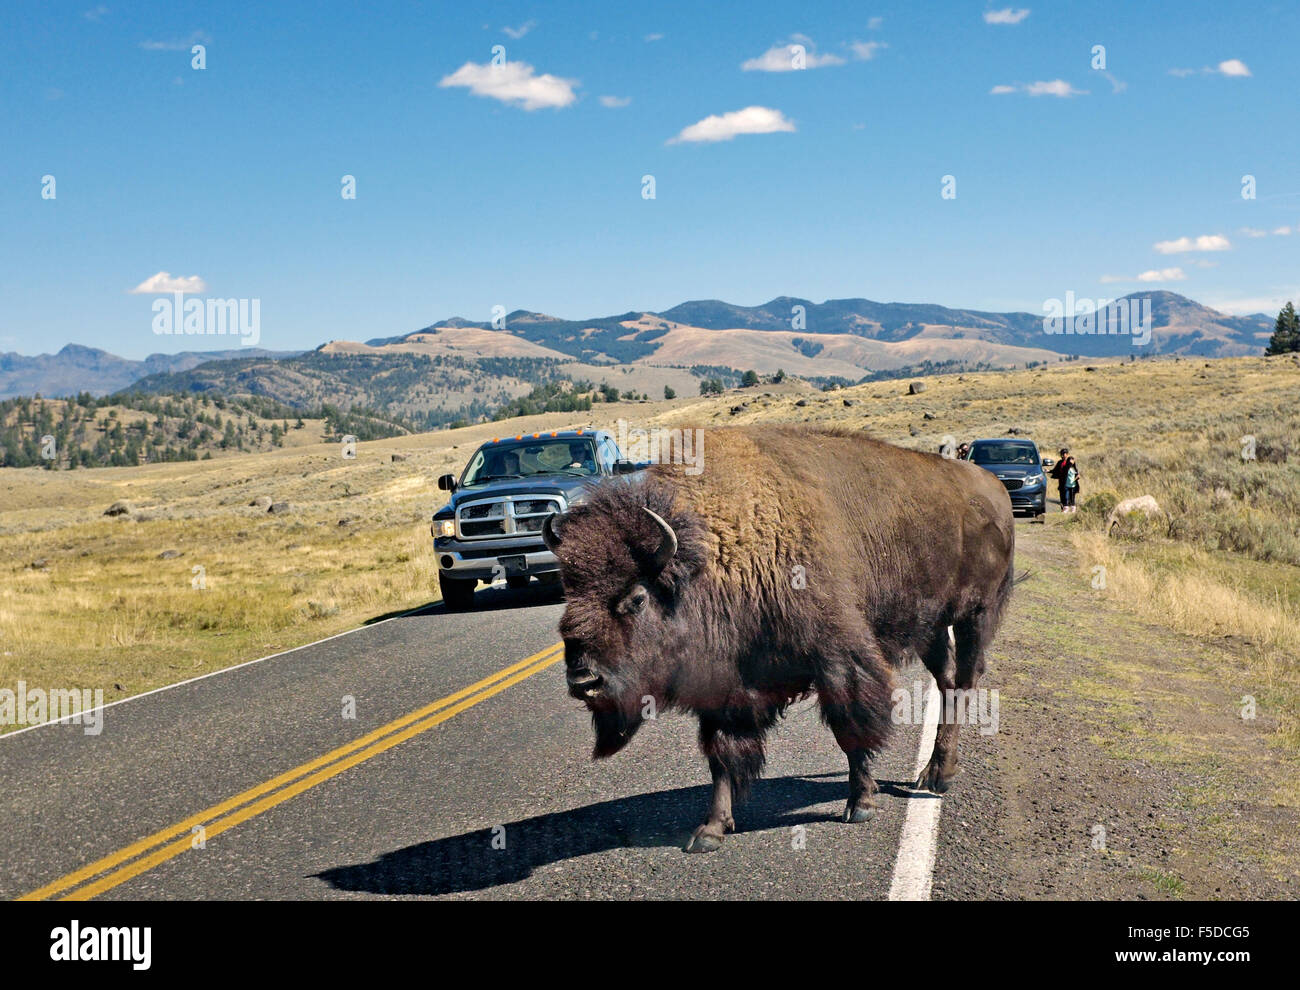 A large buffalo causes a traffic jam as it crosses a highway in Yellowstone National park, Wyoming. - Stock Image